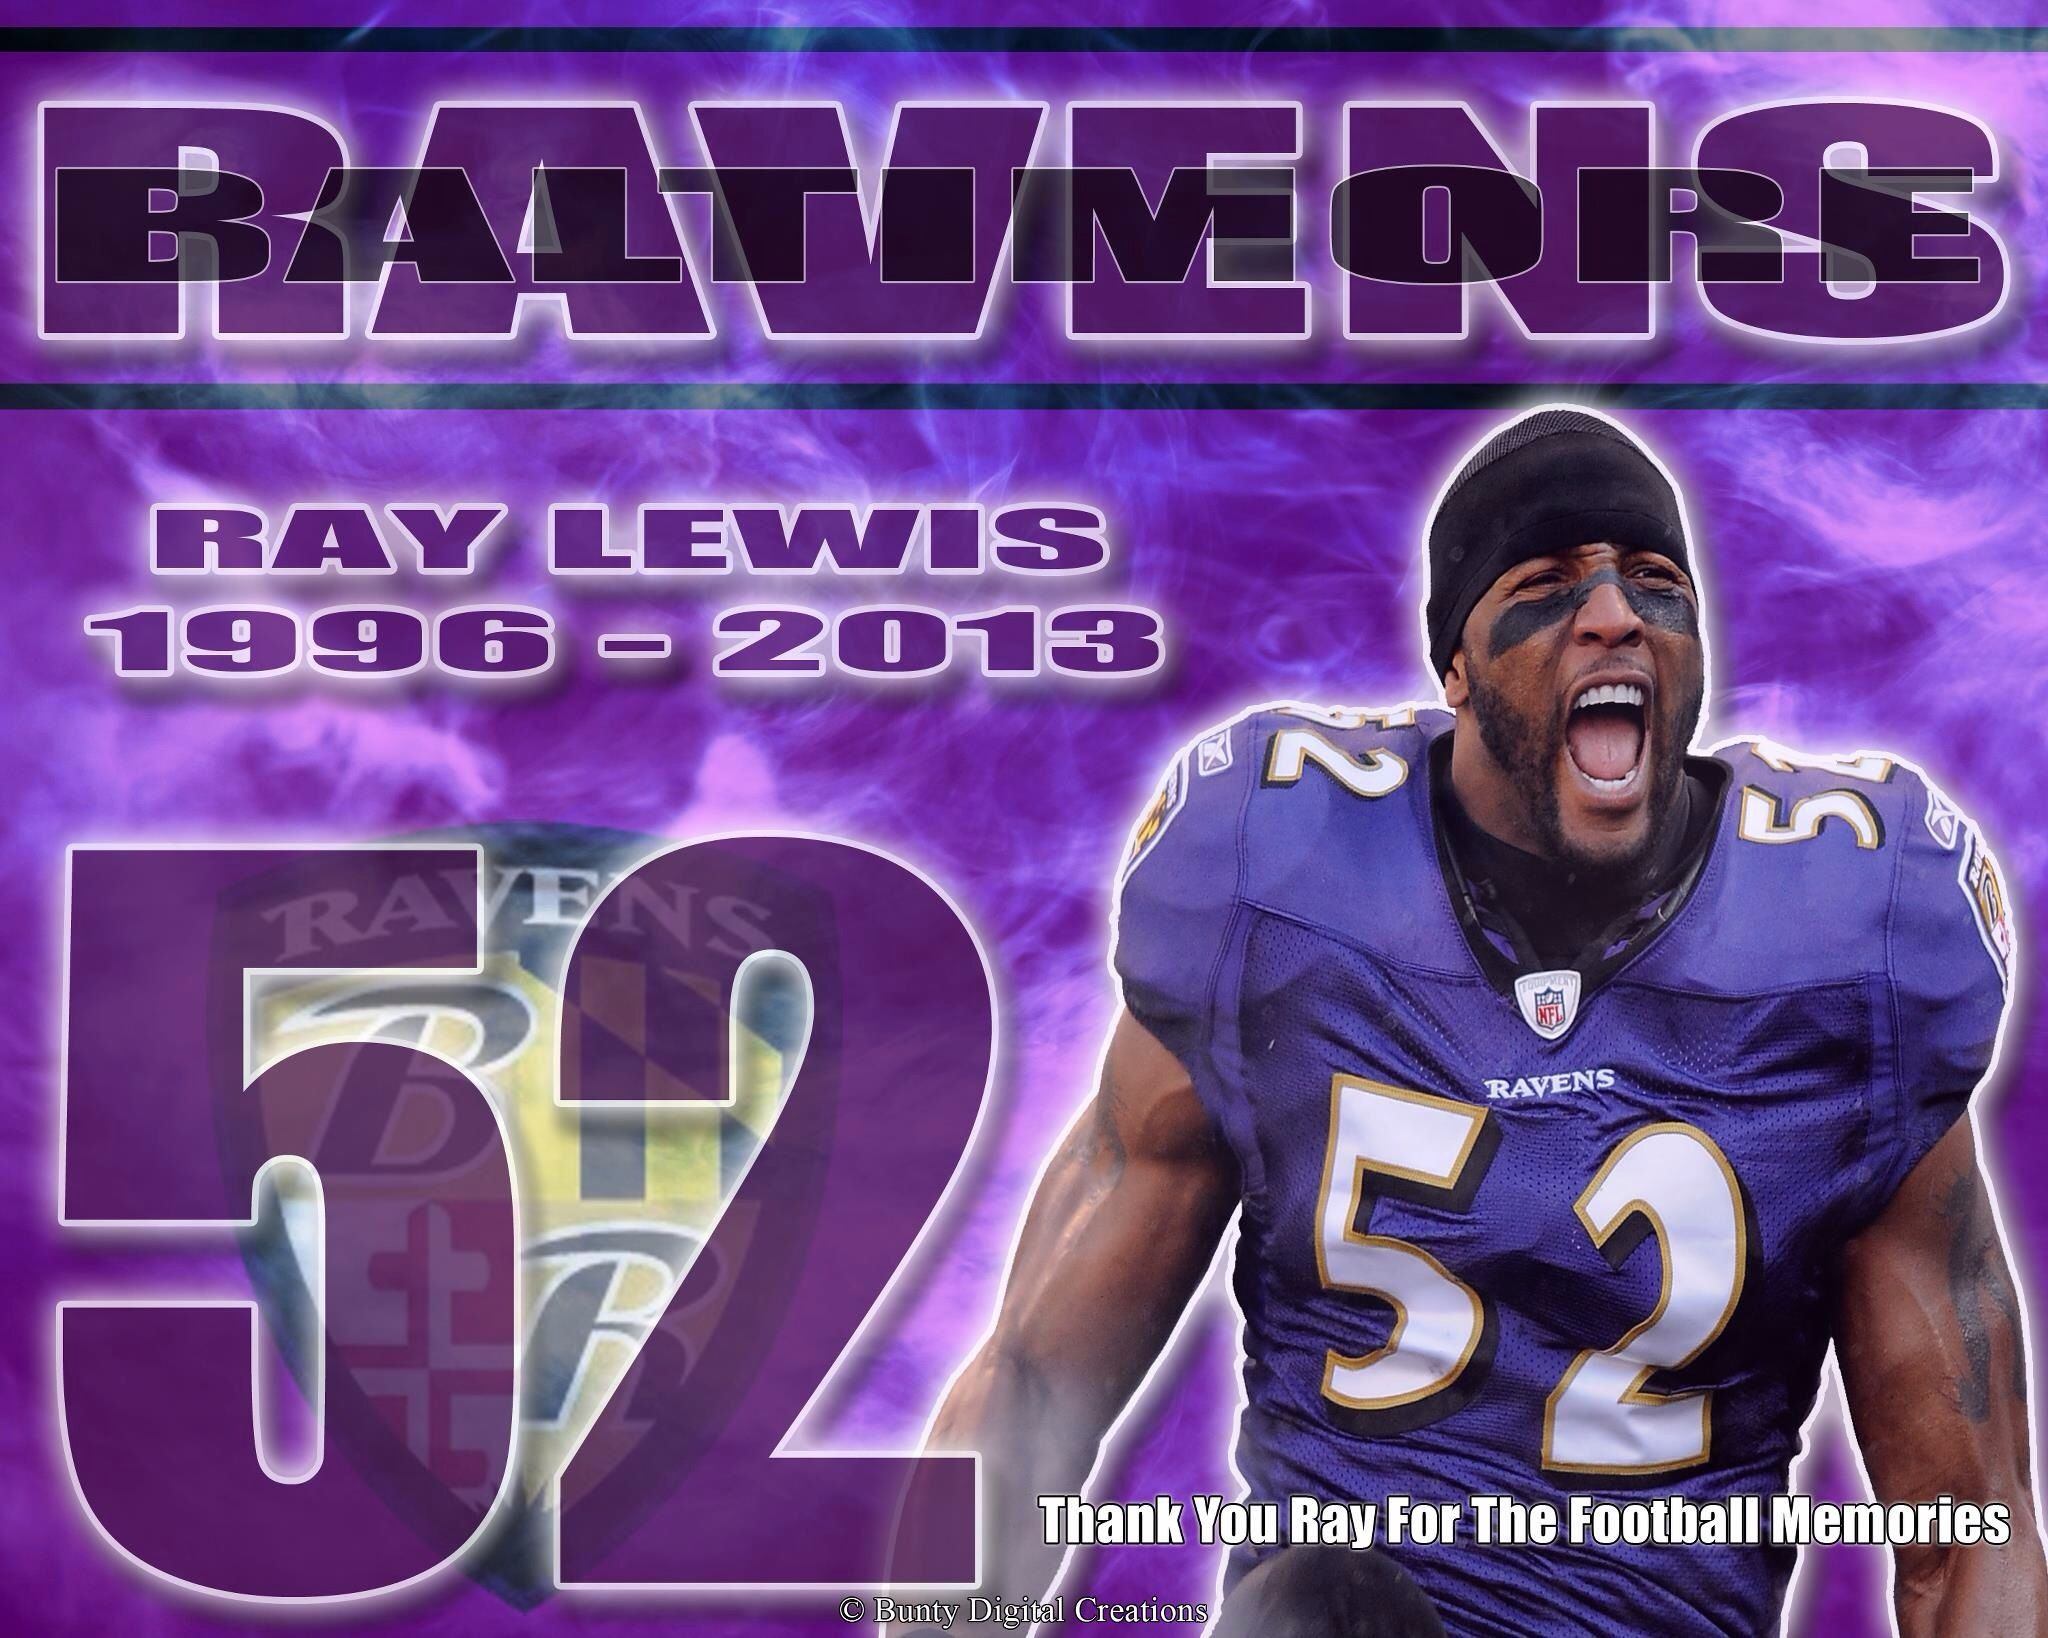 Pin by Debbie Smith on Ravens Ray lewis, Raven